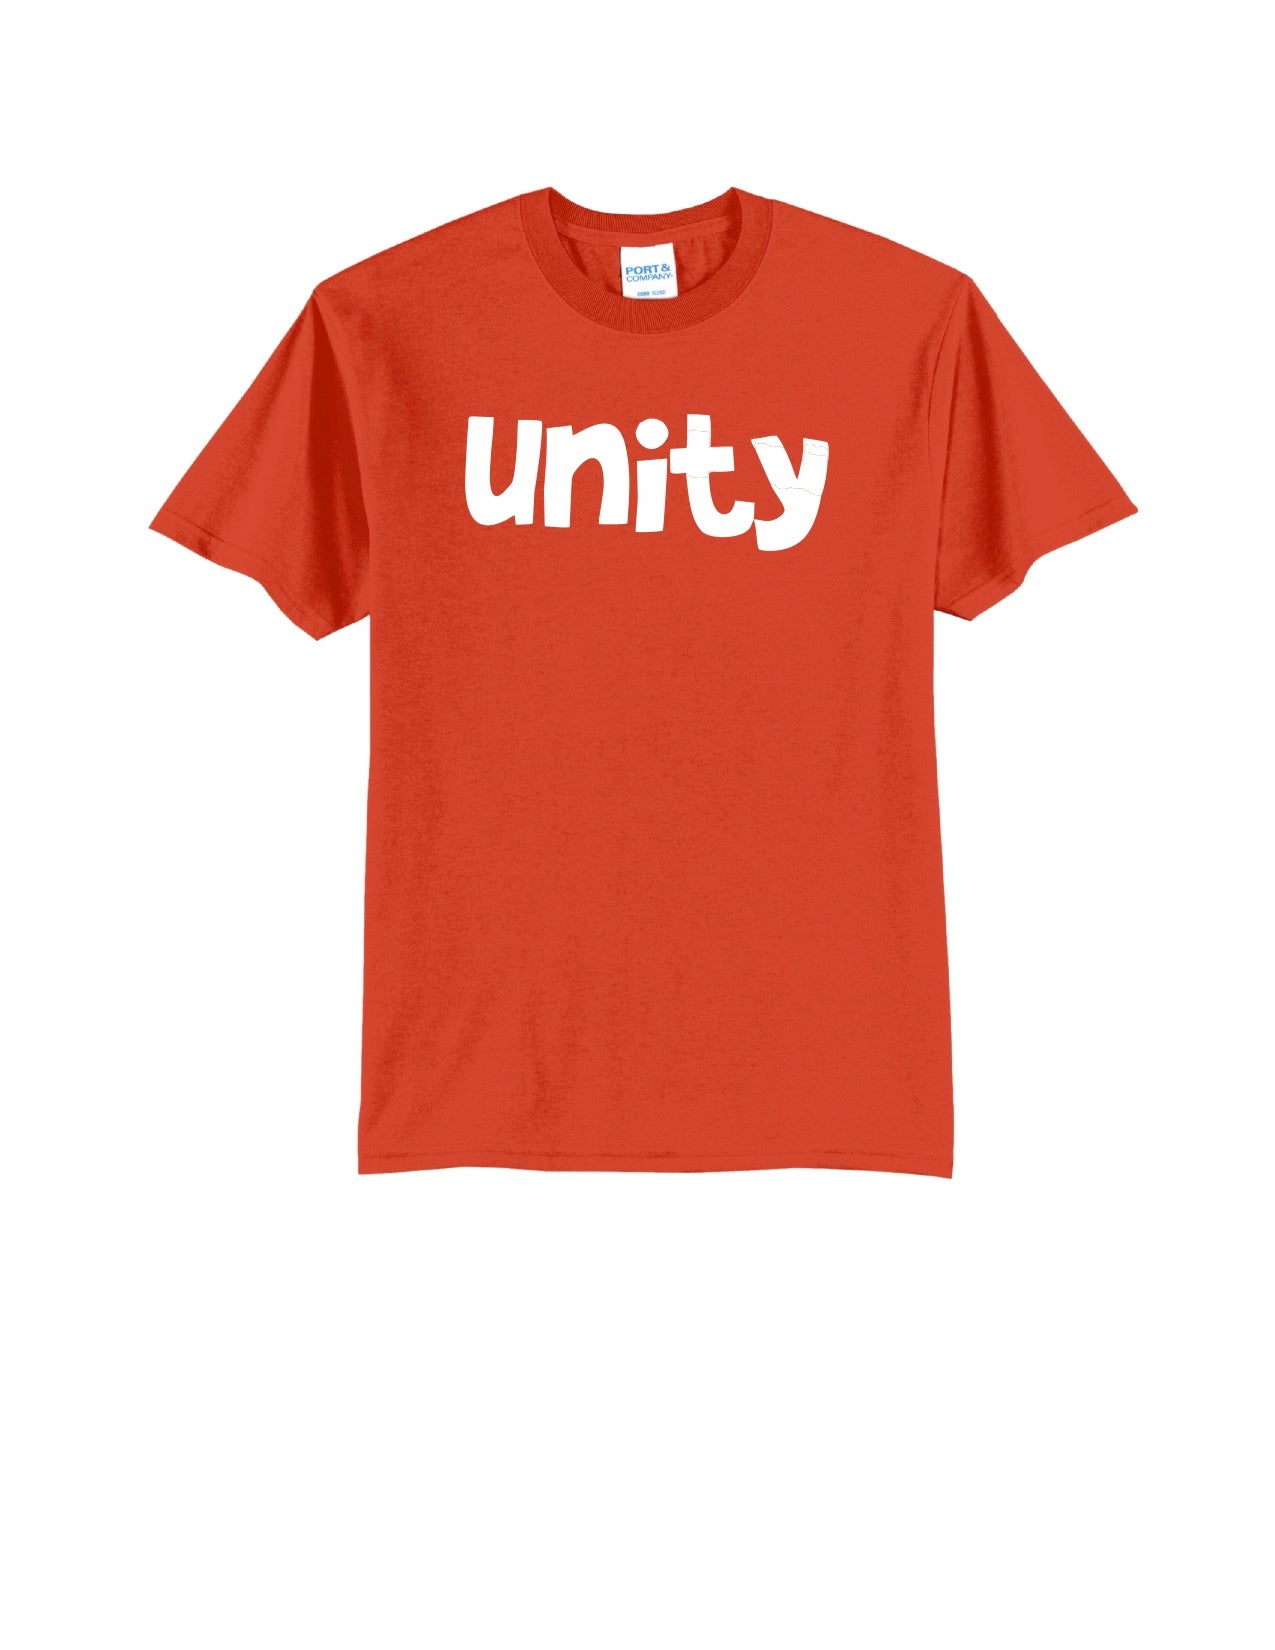 Short Sleeve Orange Unity Shirt